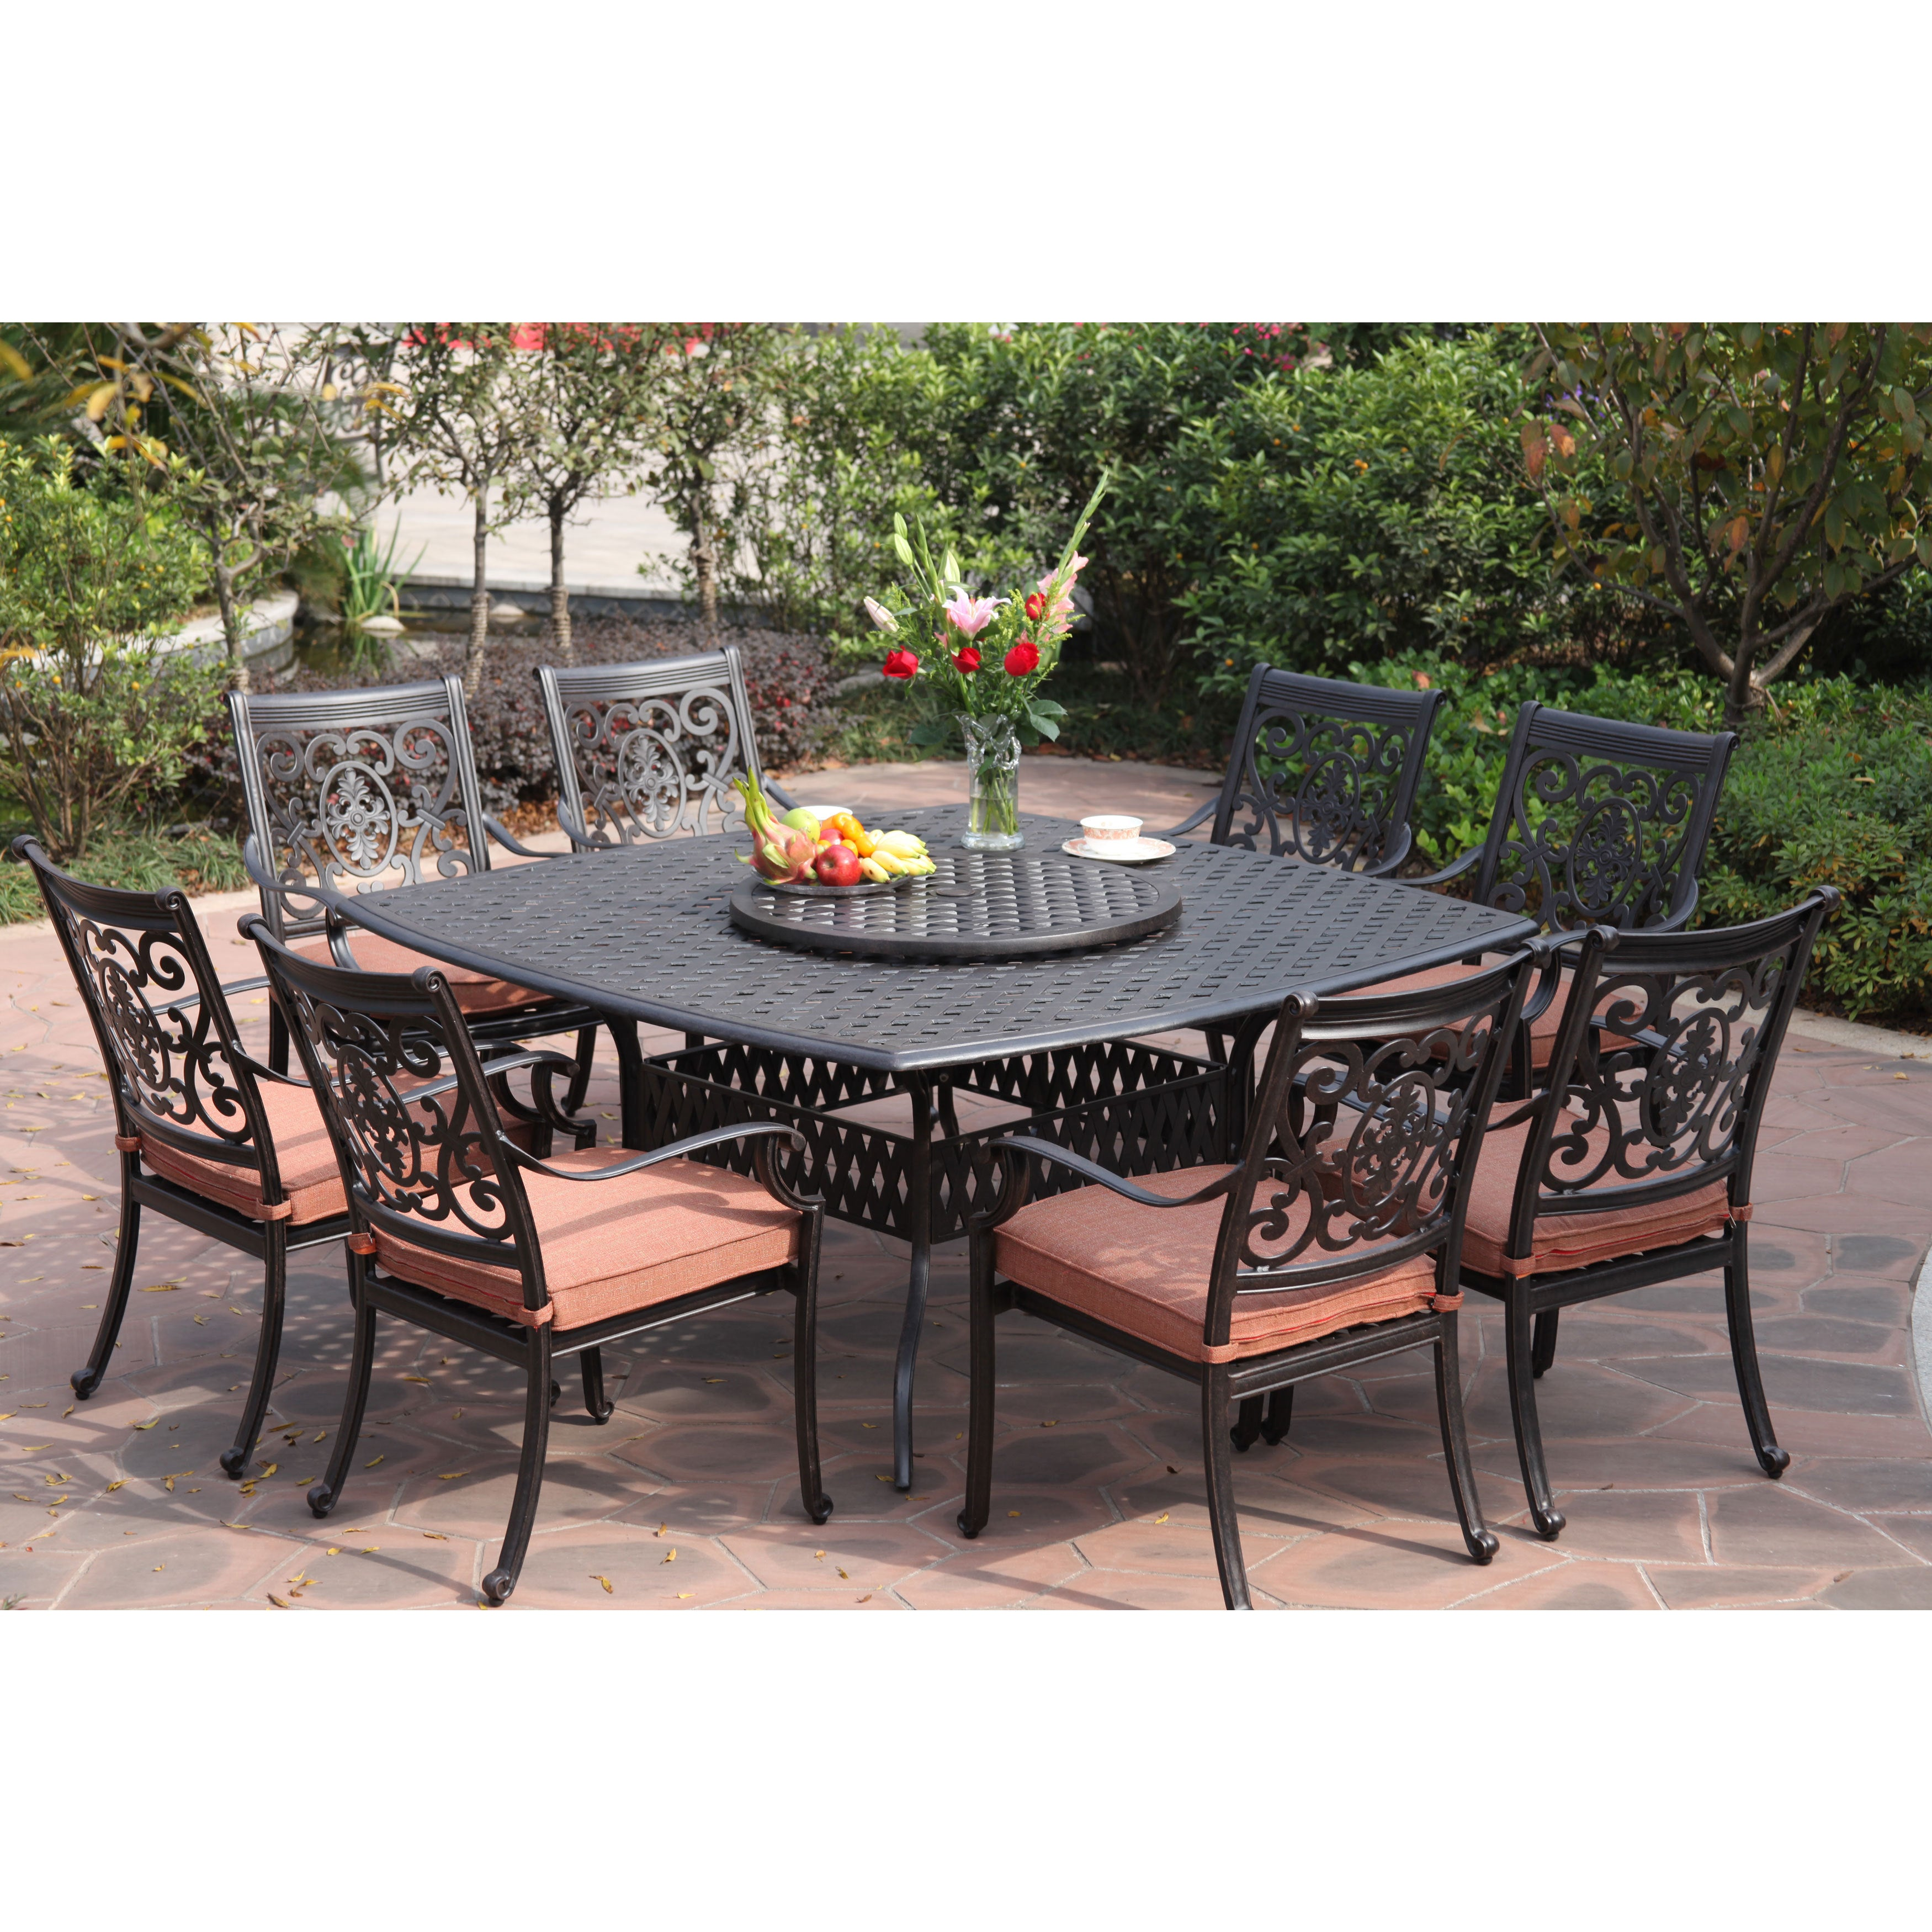 Darlee St Cruz Antiqued Cast Aluminum 10 Piece Dining Set With Y Chili Seat Cushions And 30 Inch Lazy Susan Antique Bronze